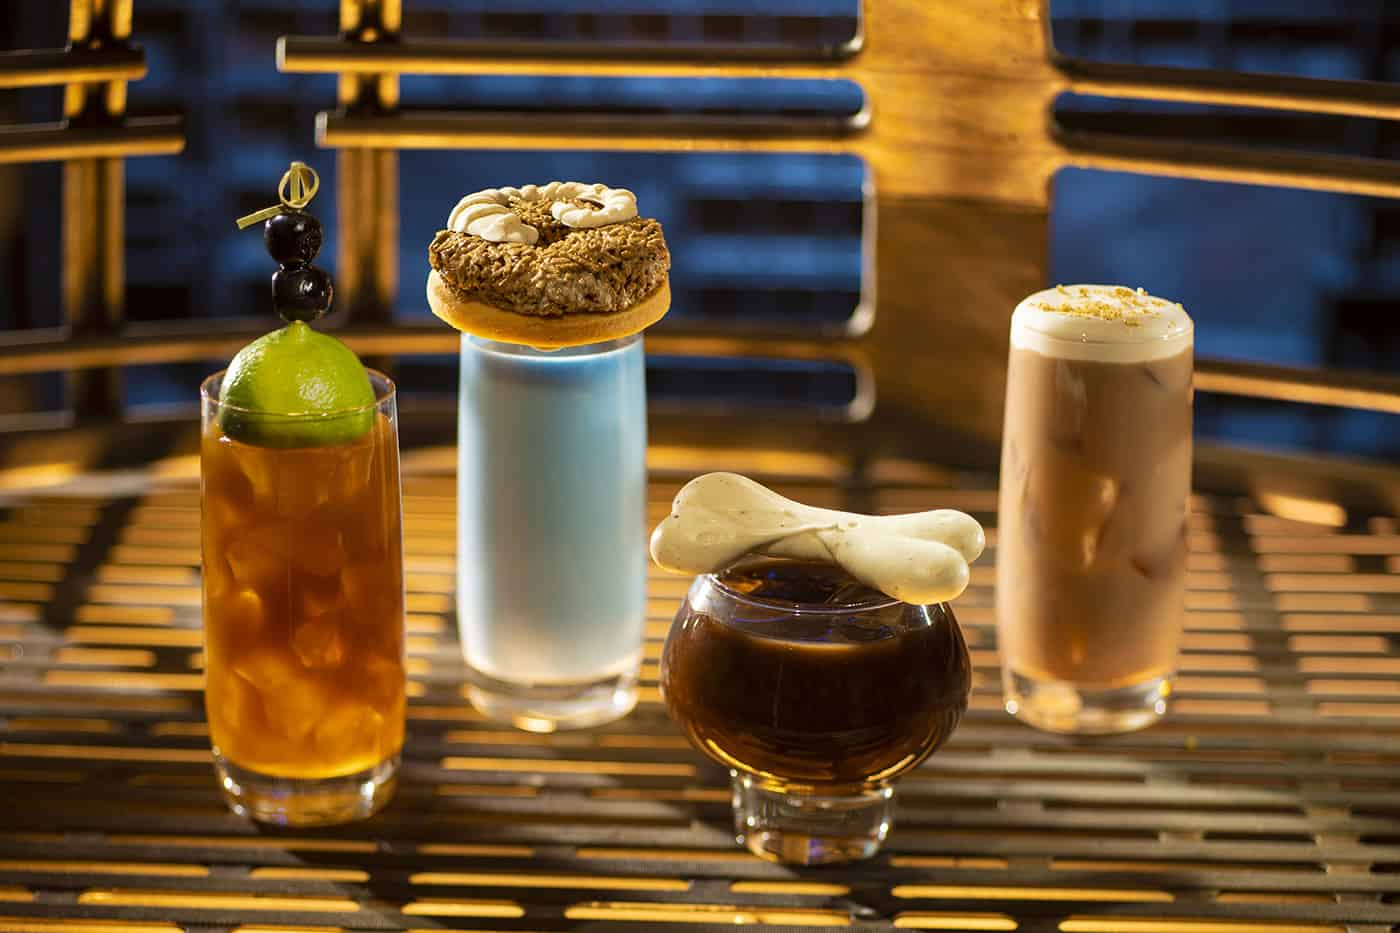 Beverage options from the Breakfast menu at Oga's Cantina